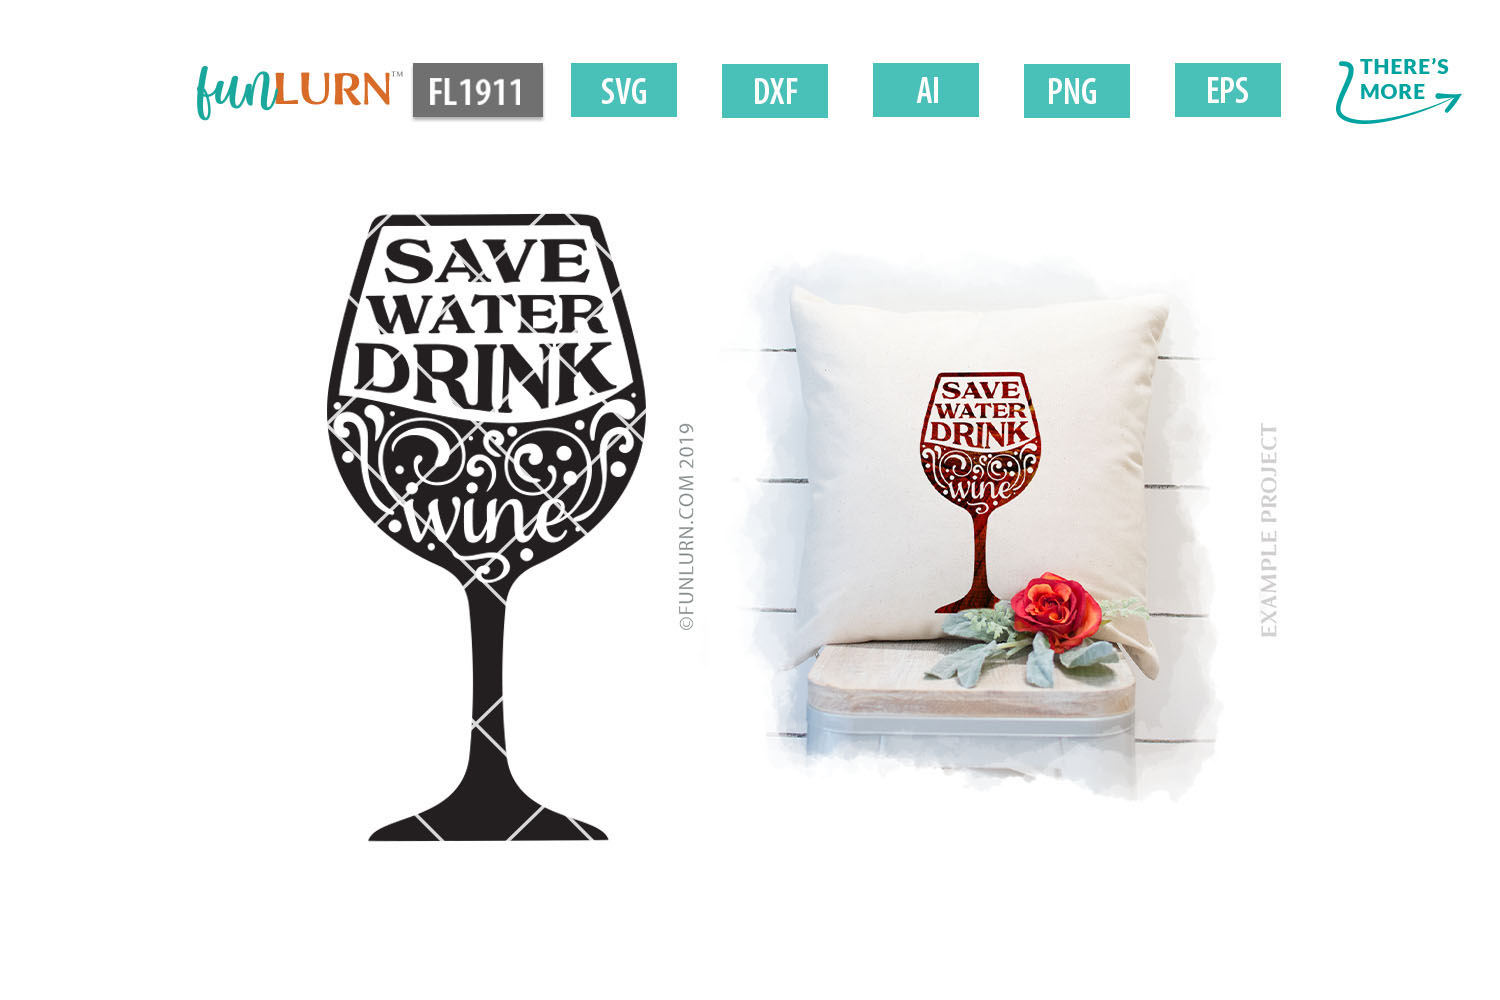 Save Water Drink Wine SVG Cut File example image 1